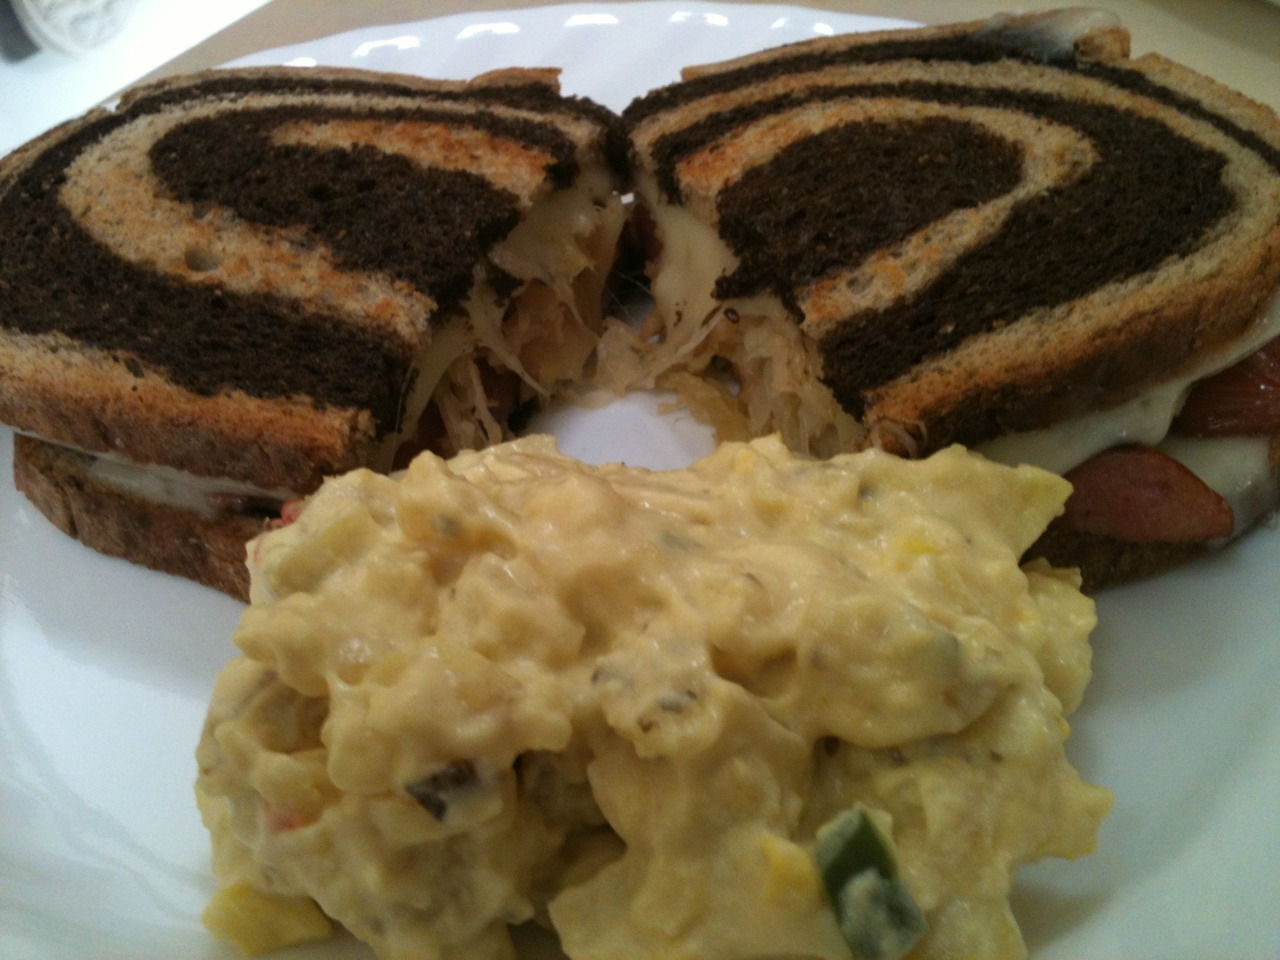 Grilled polish sausage with sour kraut  Swiss cheese with pumper nickel swirl bread.and a side of mustard potato salad